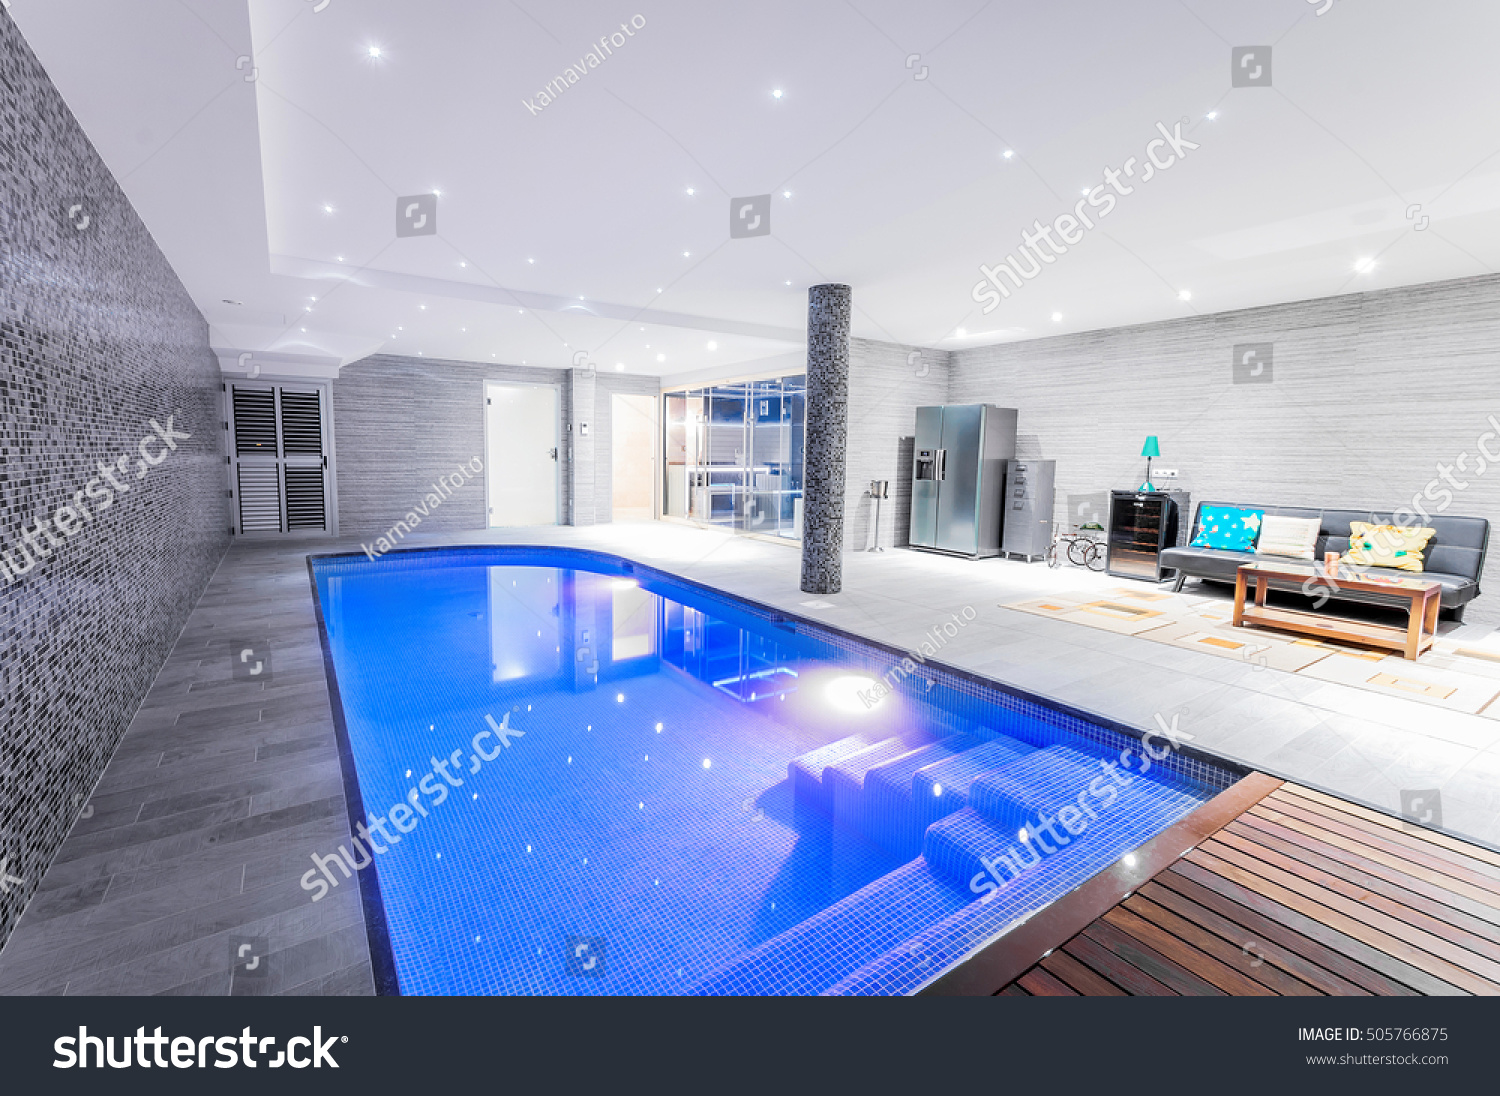 indoor swimming pool lighting. Relaxing Indoor Swimming Pool With Lighting And A Corner For Rest. Luxury Resort O